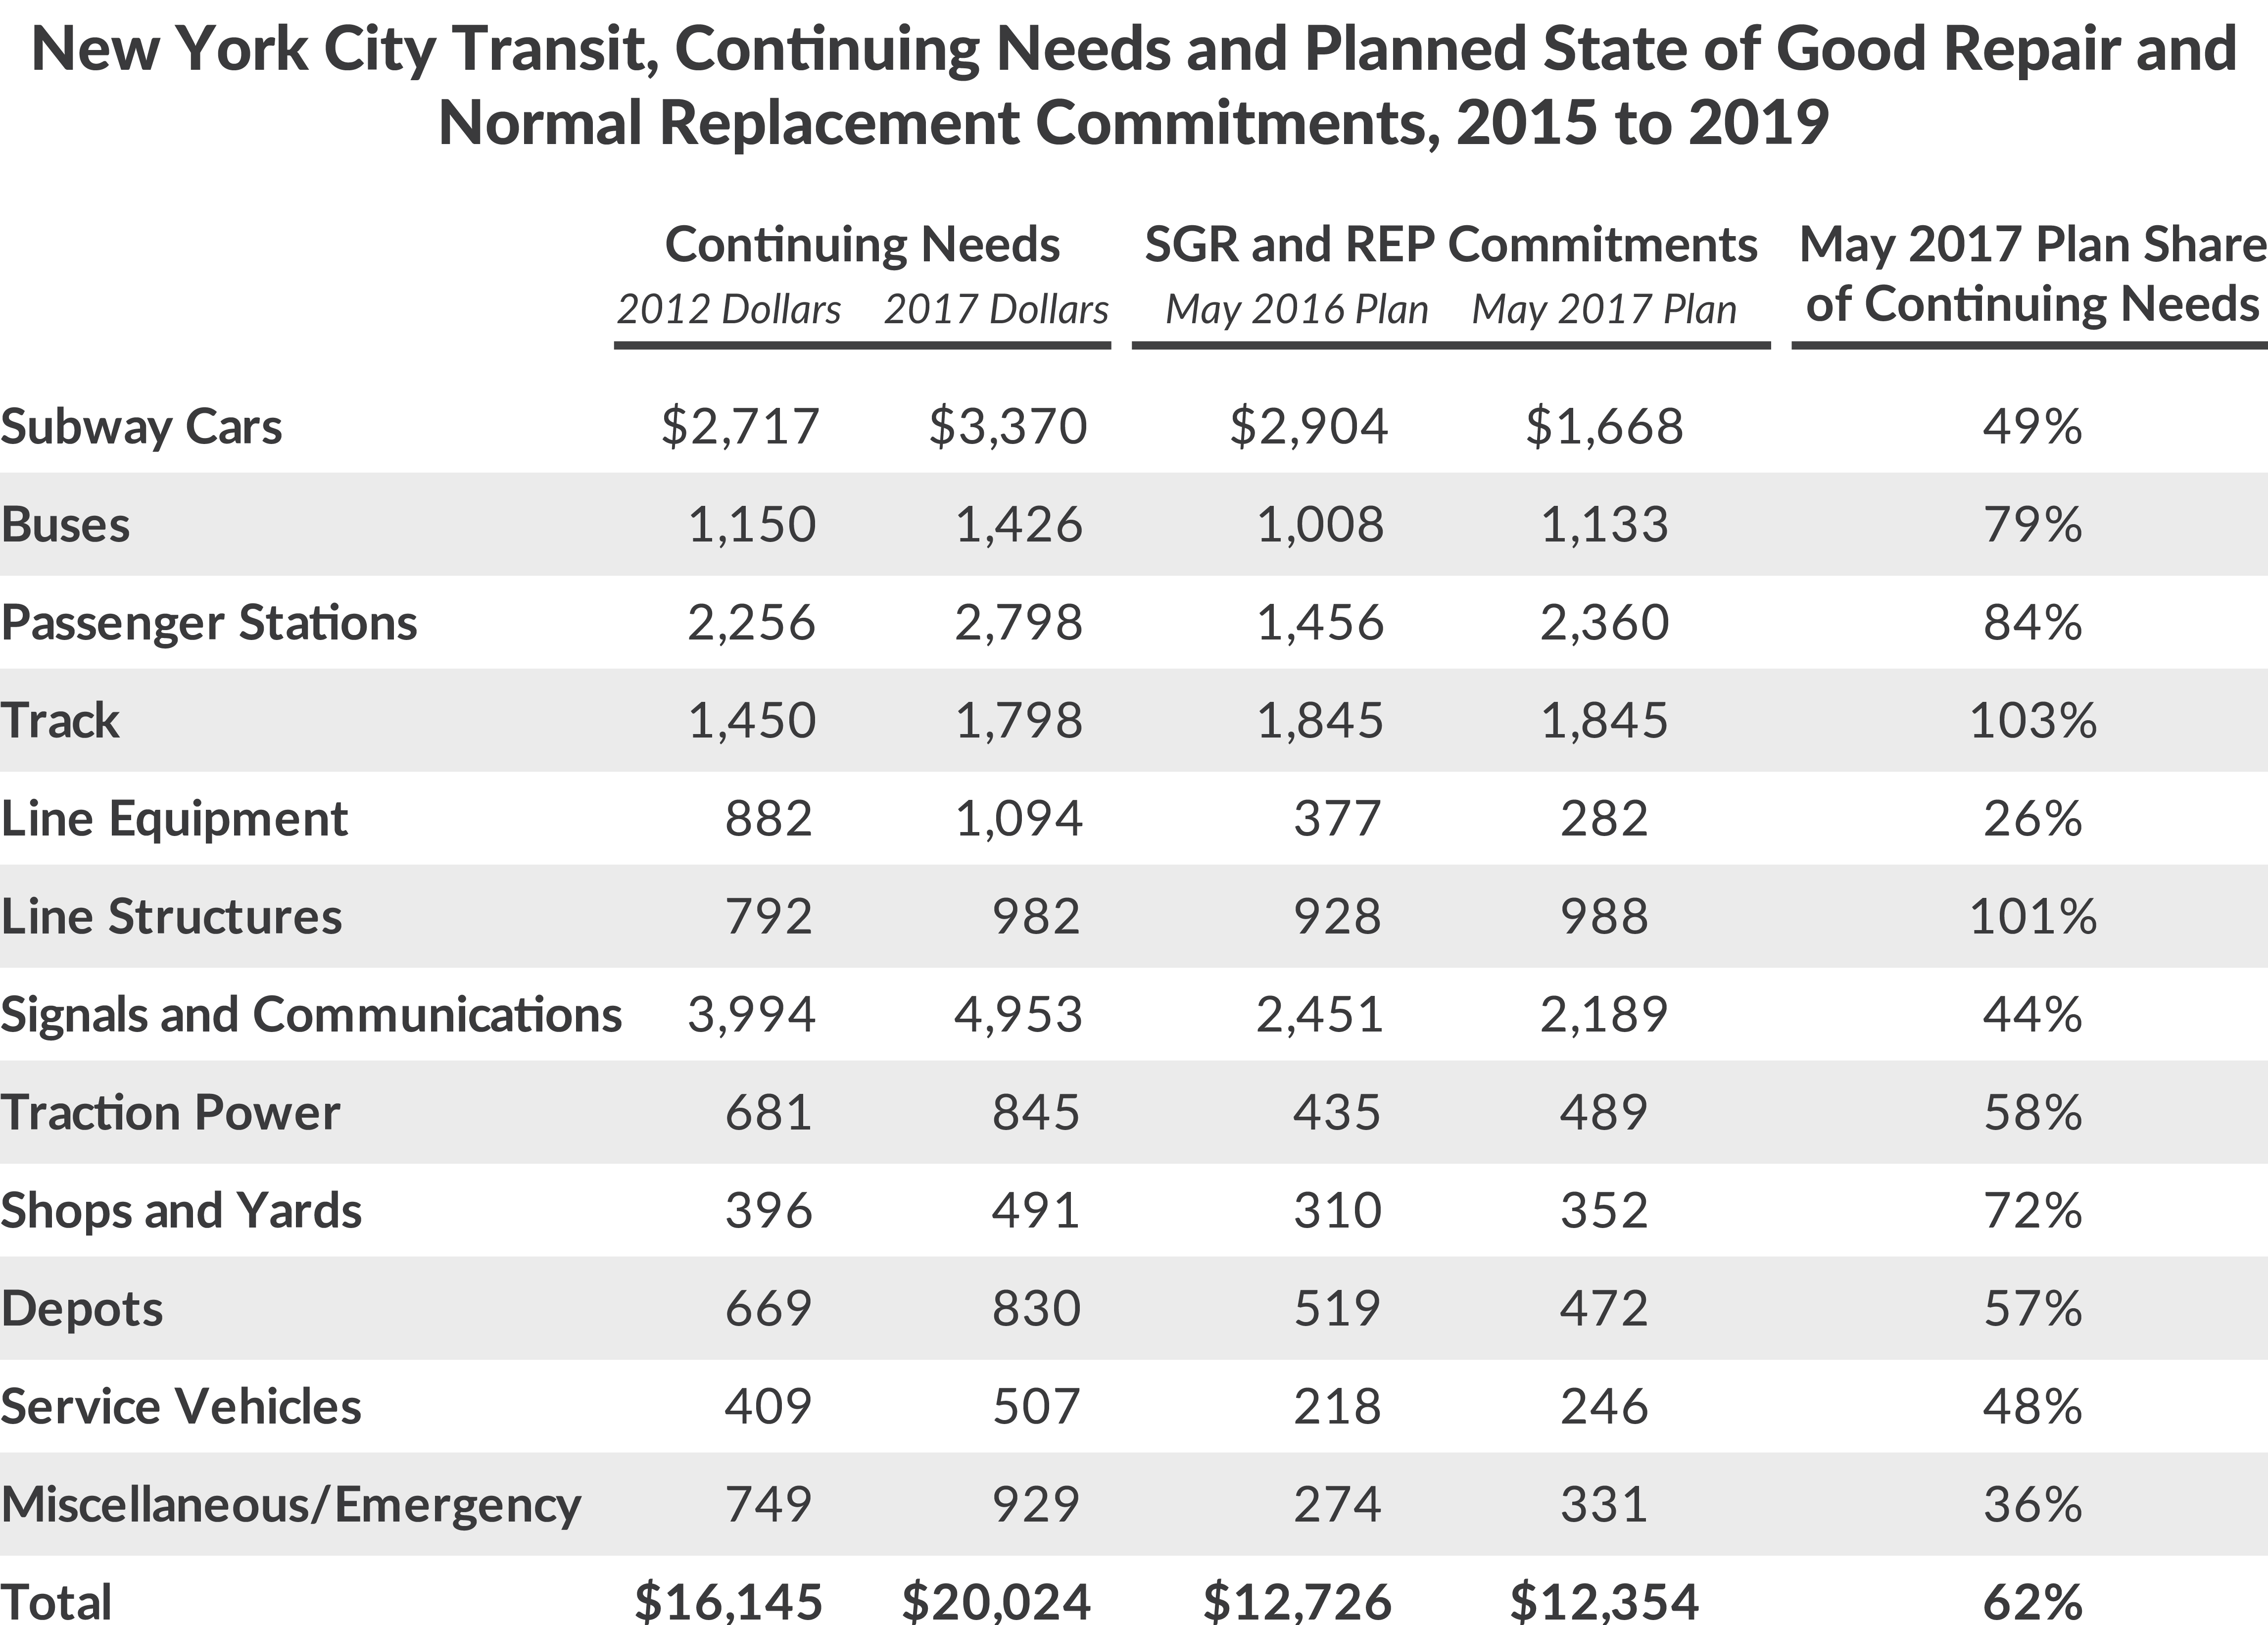 New York City Transit, Continuing Needs and Planned State of Good Repair and Normal Replacement Commitments, 2015 to 2019